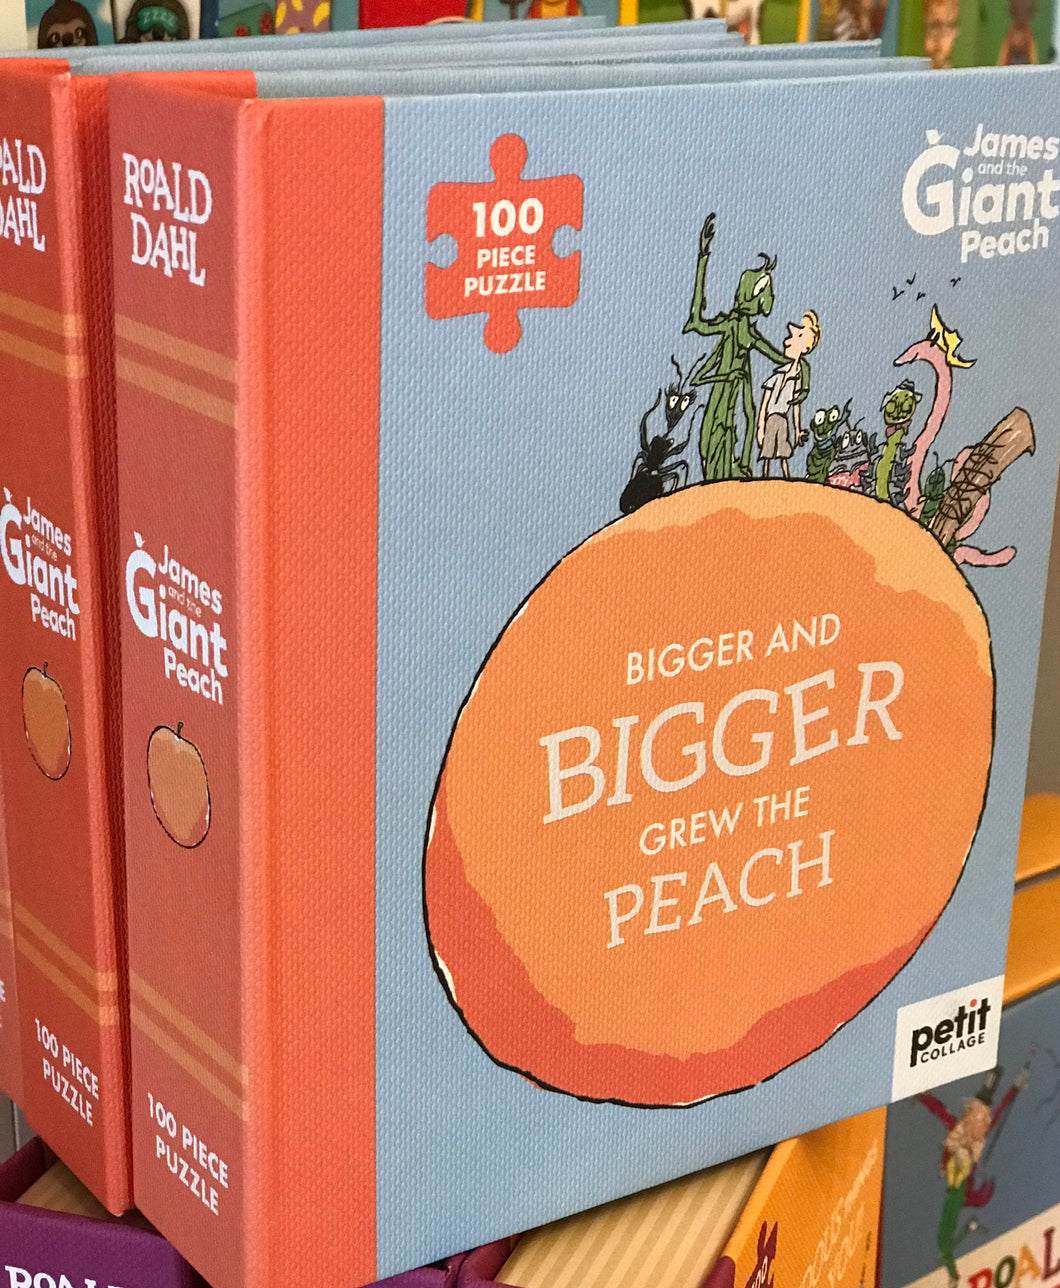 Roald Dahl - Jigsaw Bigger and Bigger Grew the Peach